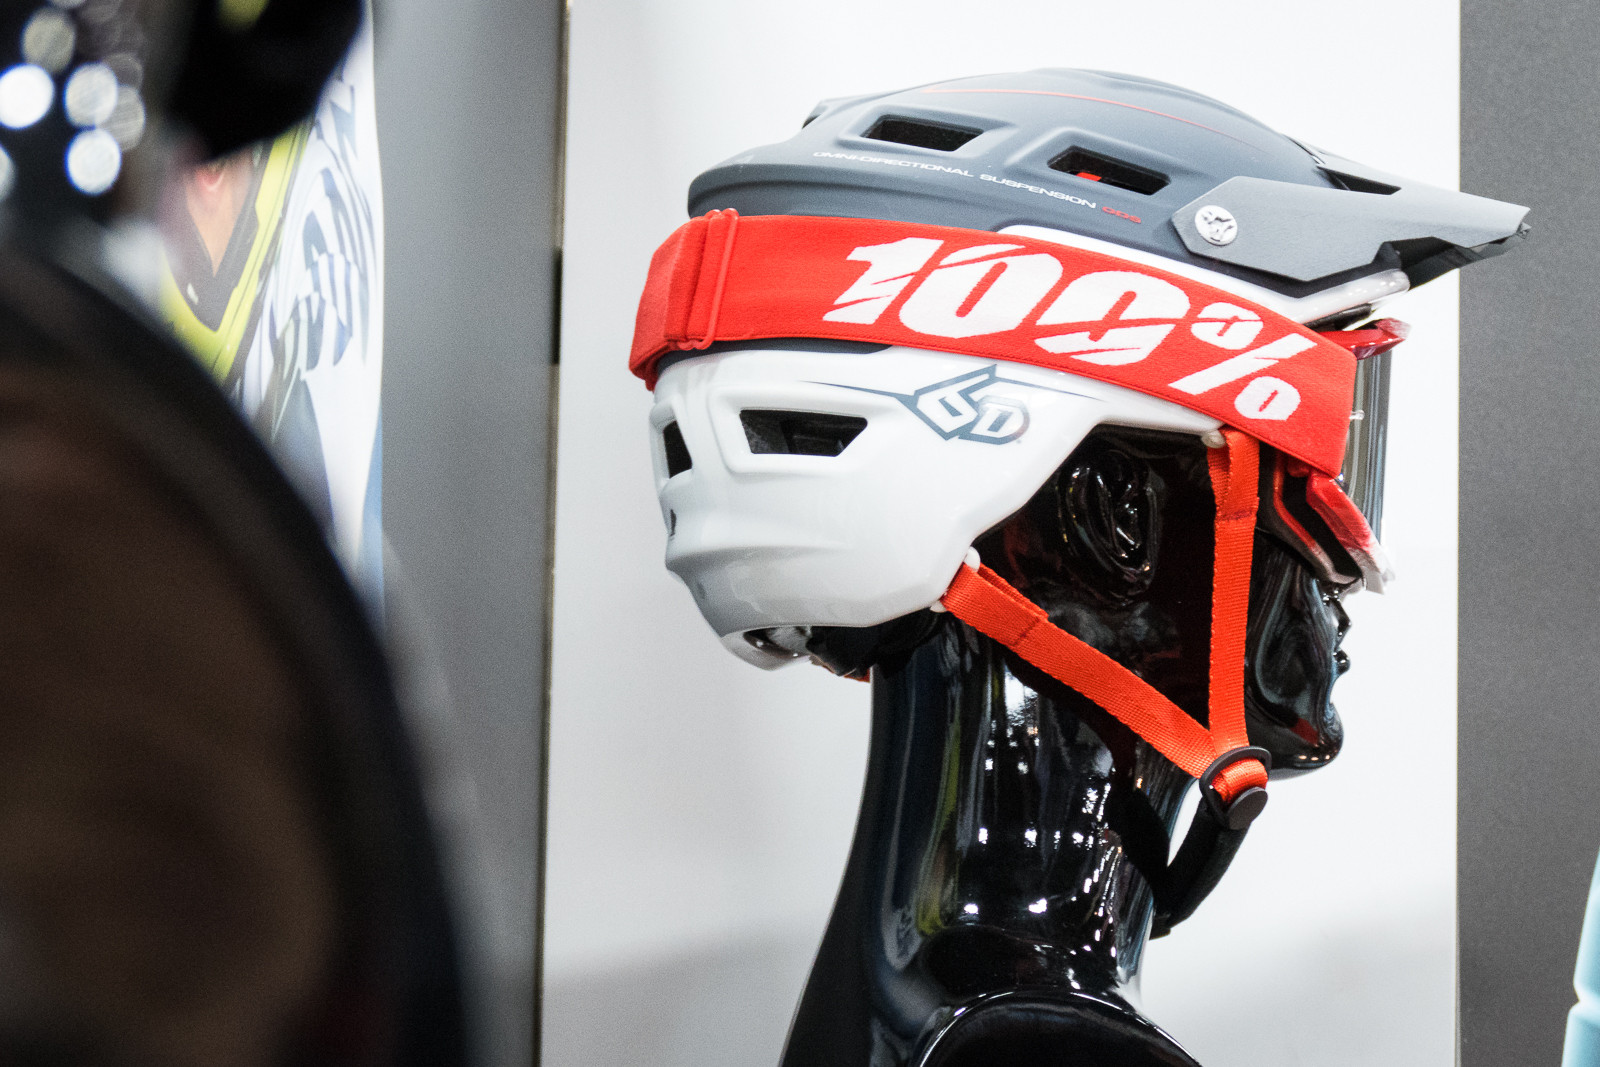 6D Enduro / Trail Helmet - 2016 Protective Gear and Apparel at Interbike - Mountain Biking Pictures - Vital MTB